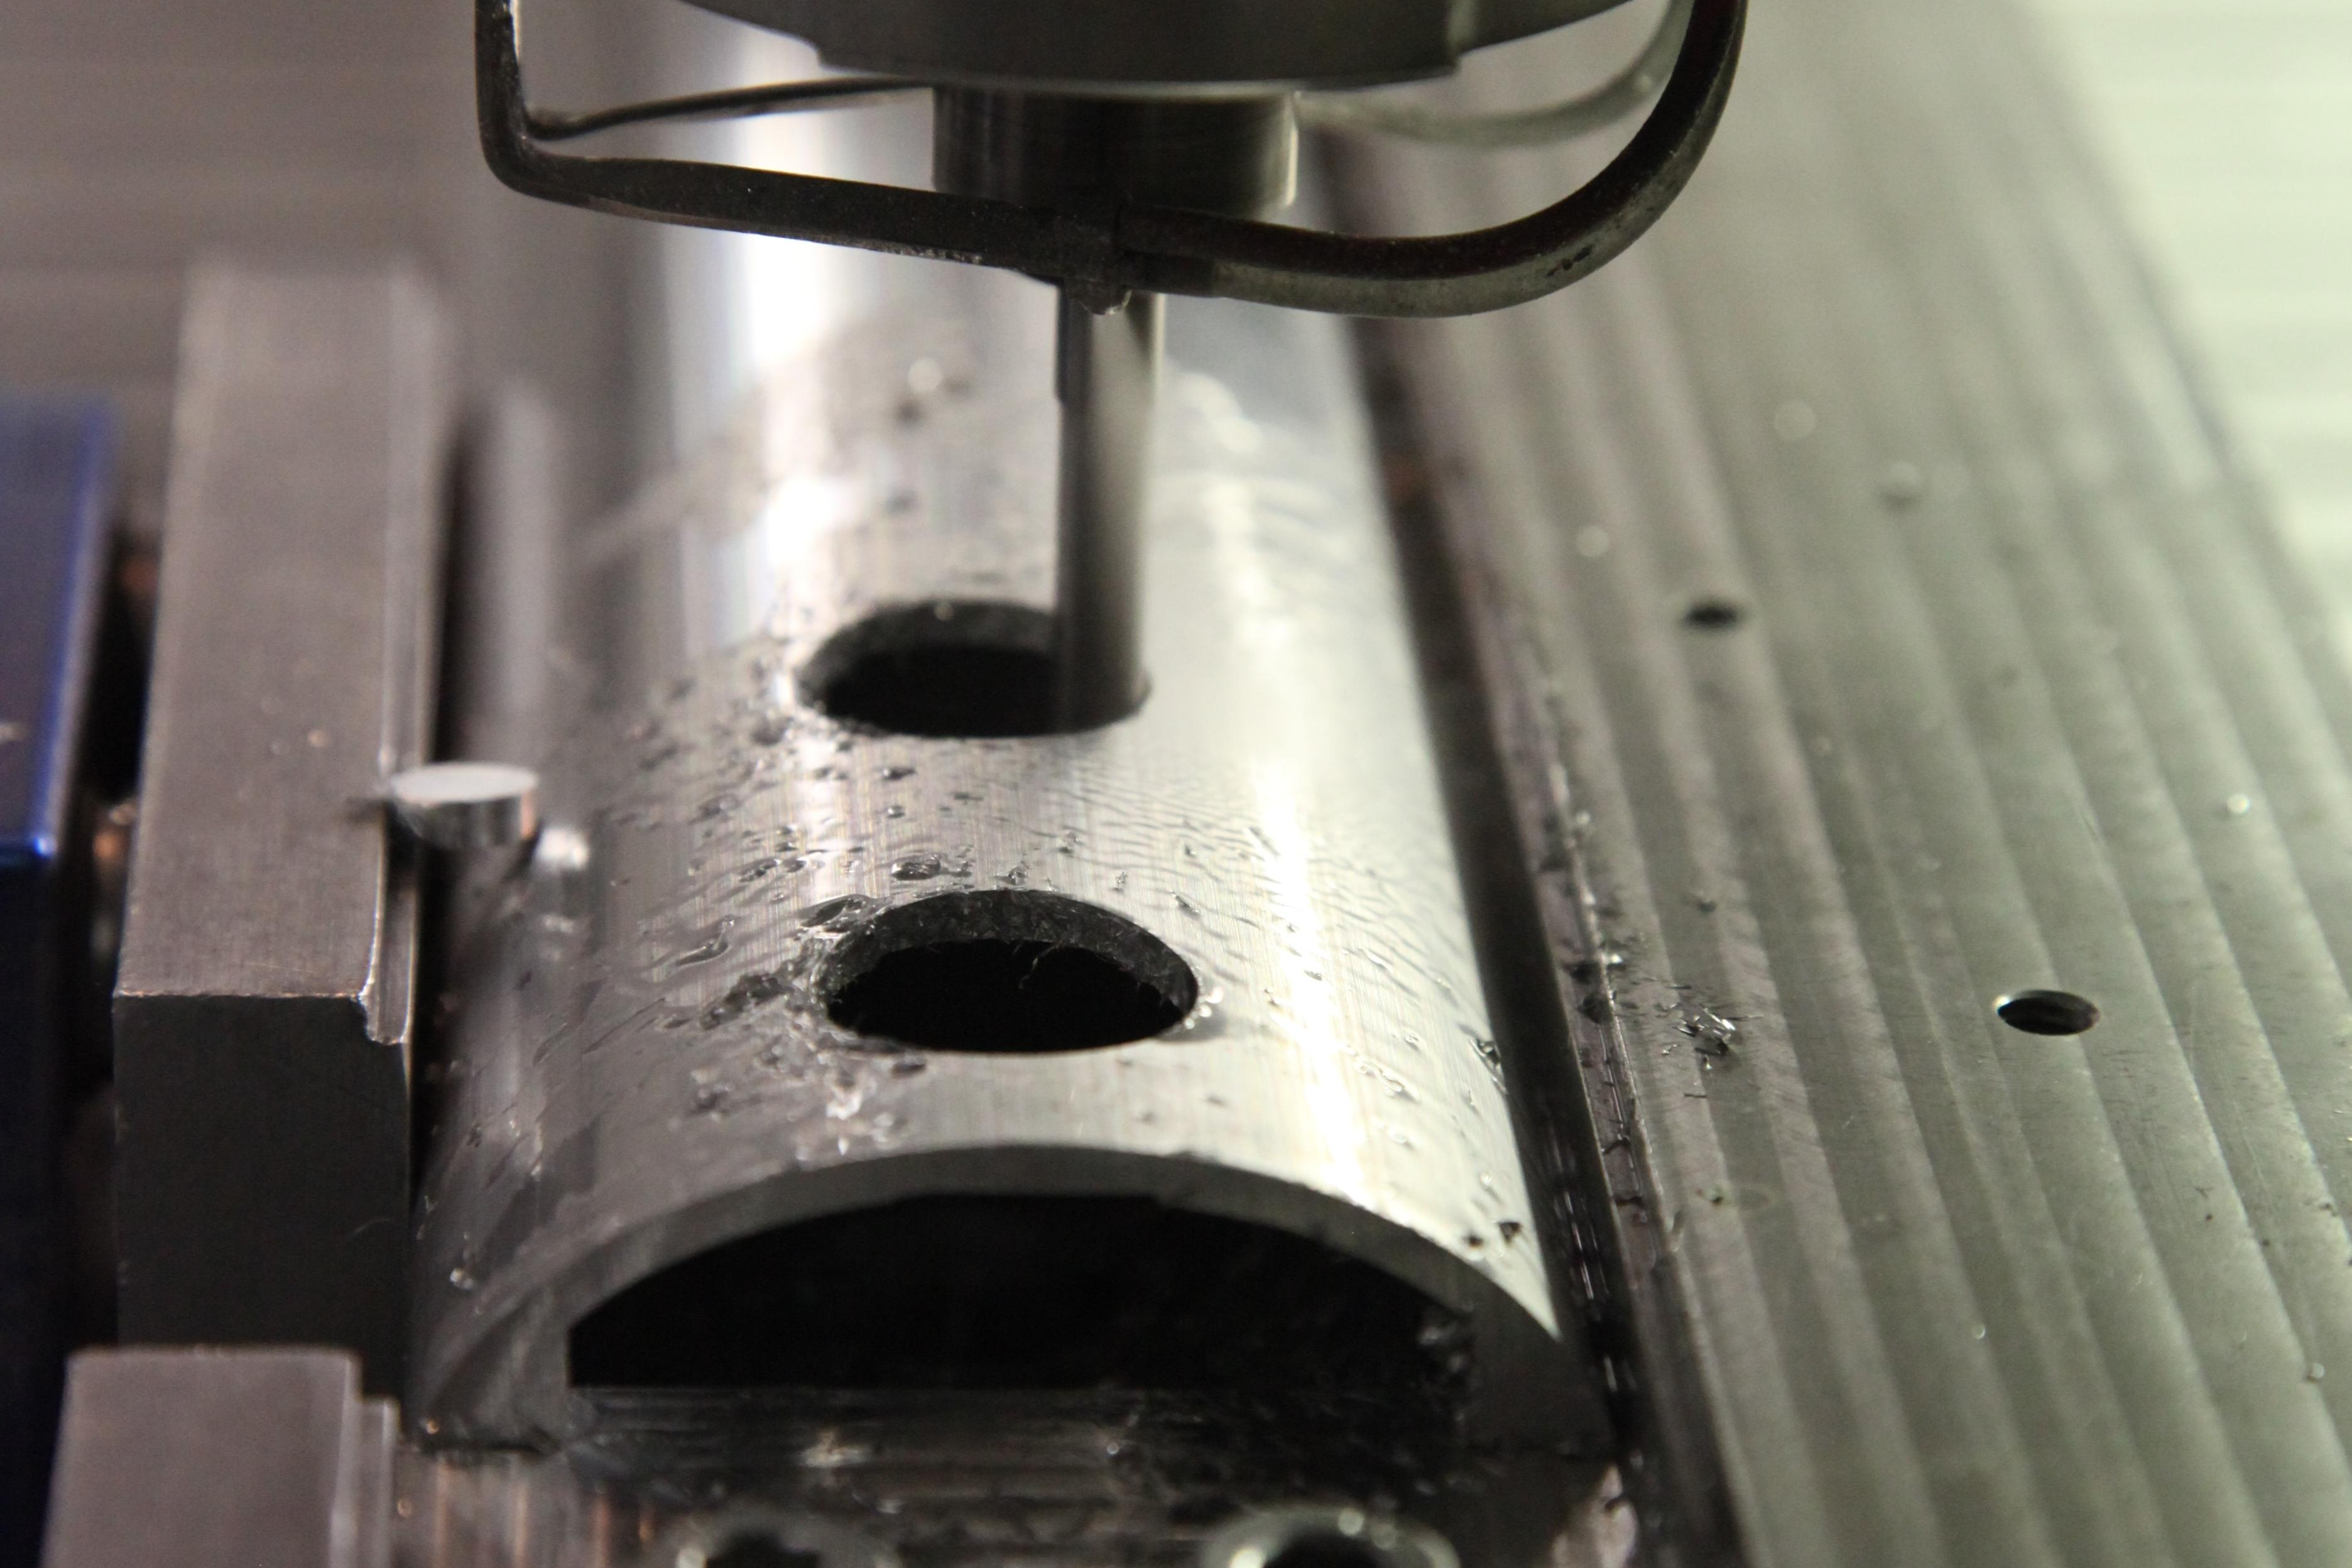 Drilling holes in an aluminium extrusion